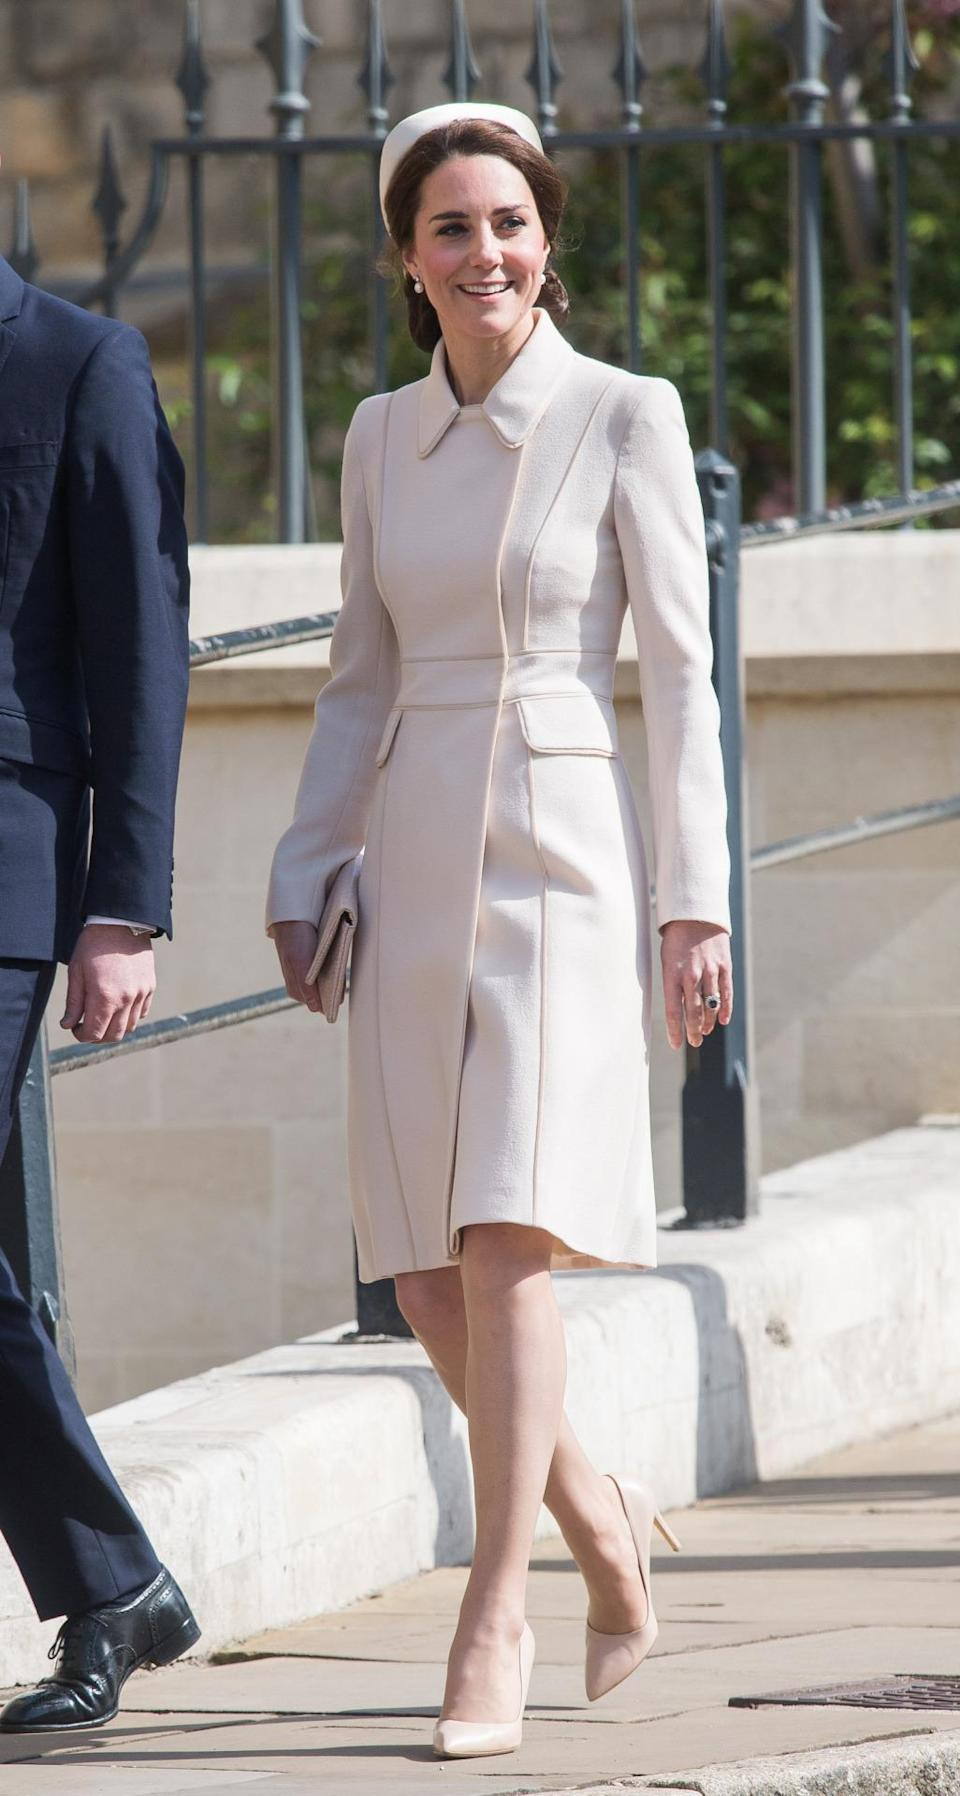 <p>Kate recycled yet another outfit for the Easter Sunday service in Windsor. Her bespoke cream coat by Catherine Walker was first seen on the Canadian royal tour. The Duchess chose matching accessories in the form of Rupert Sanderson pumps and a lattice clutch by Etui Bags. A satin pillbox hat topped off the springtime look. </p><p><i>[Photo: PA]</i></p>